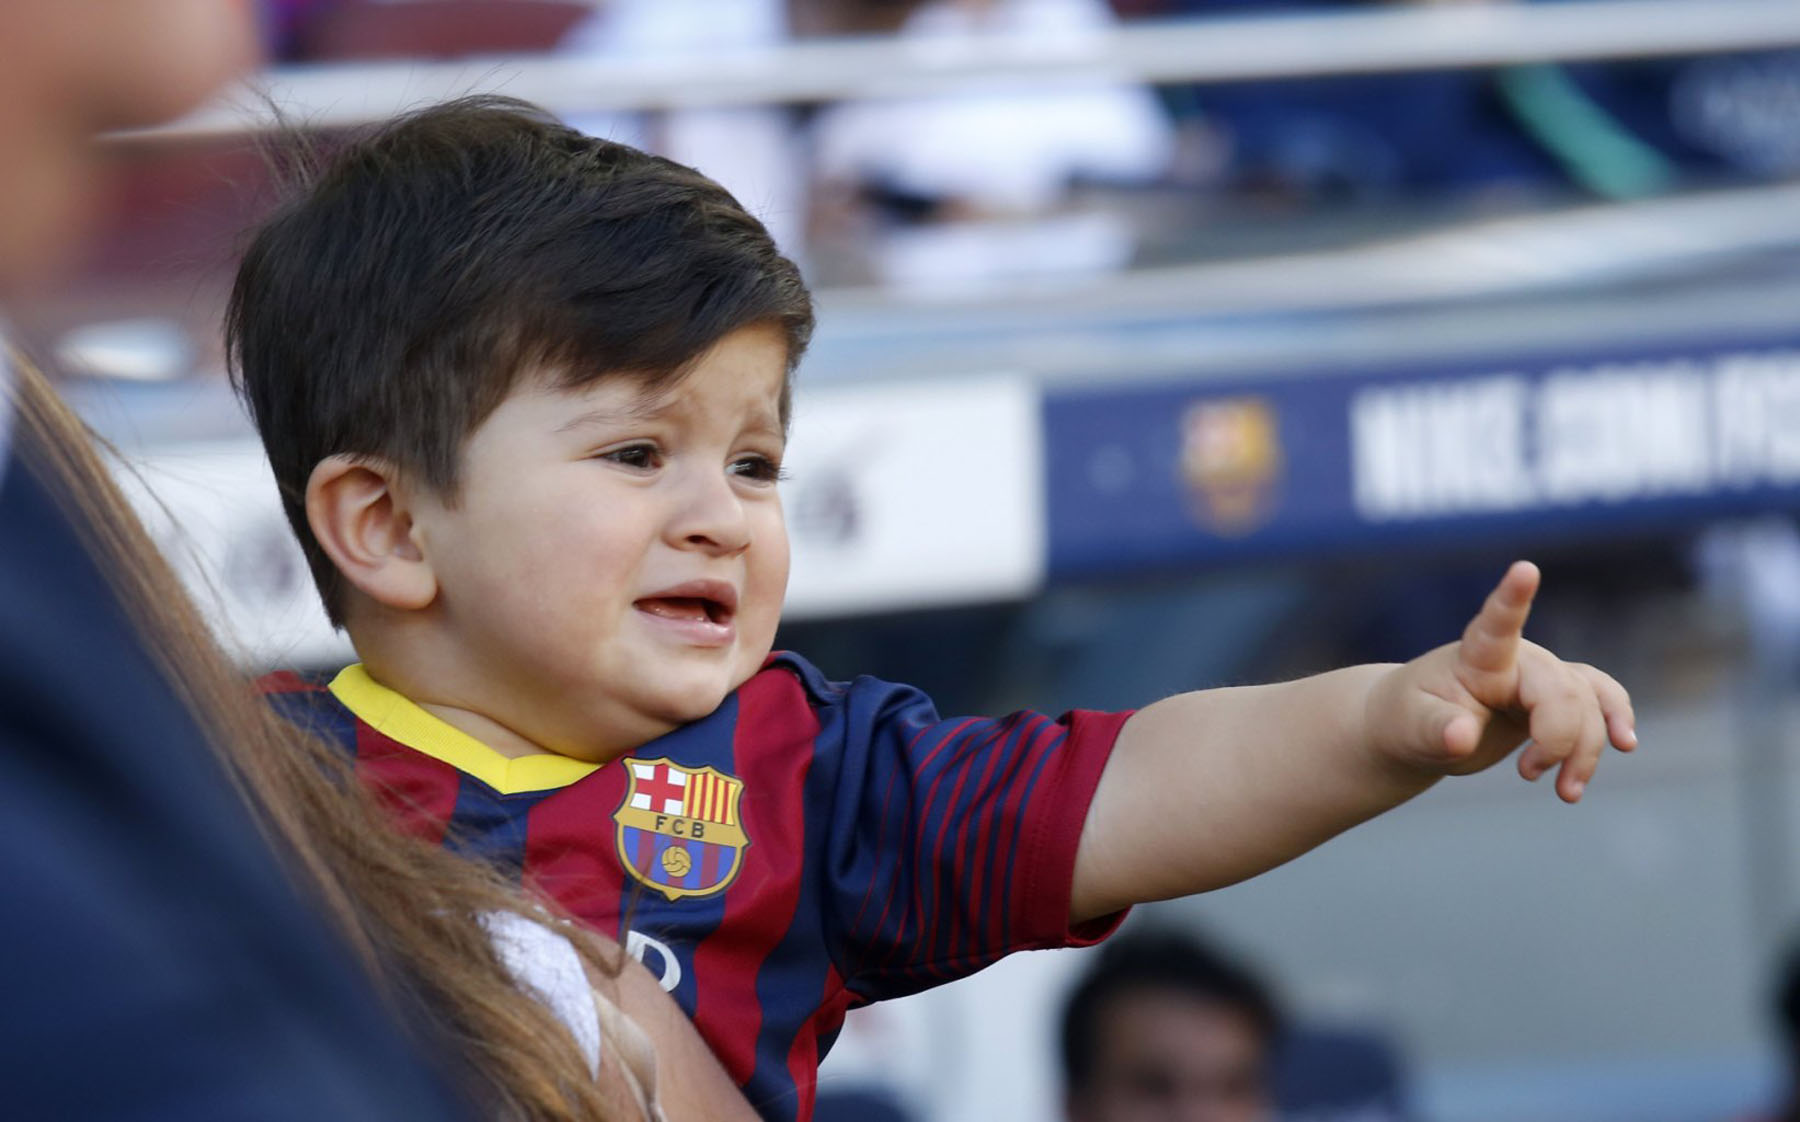 Lionel Messi's son, Thiago Messi